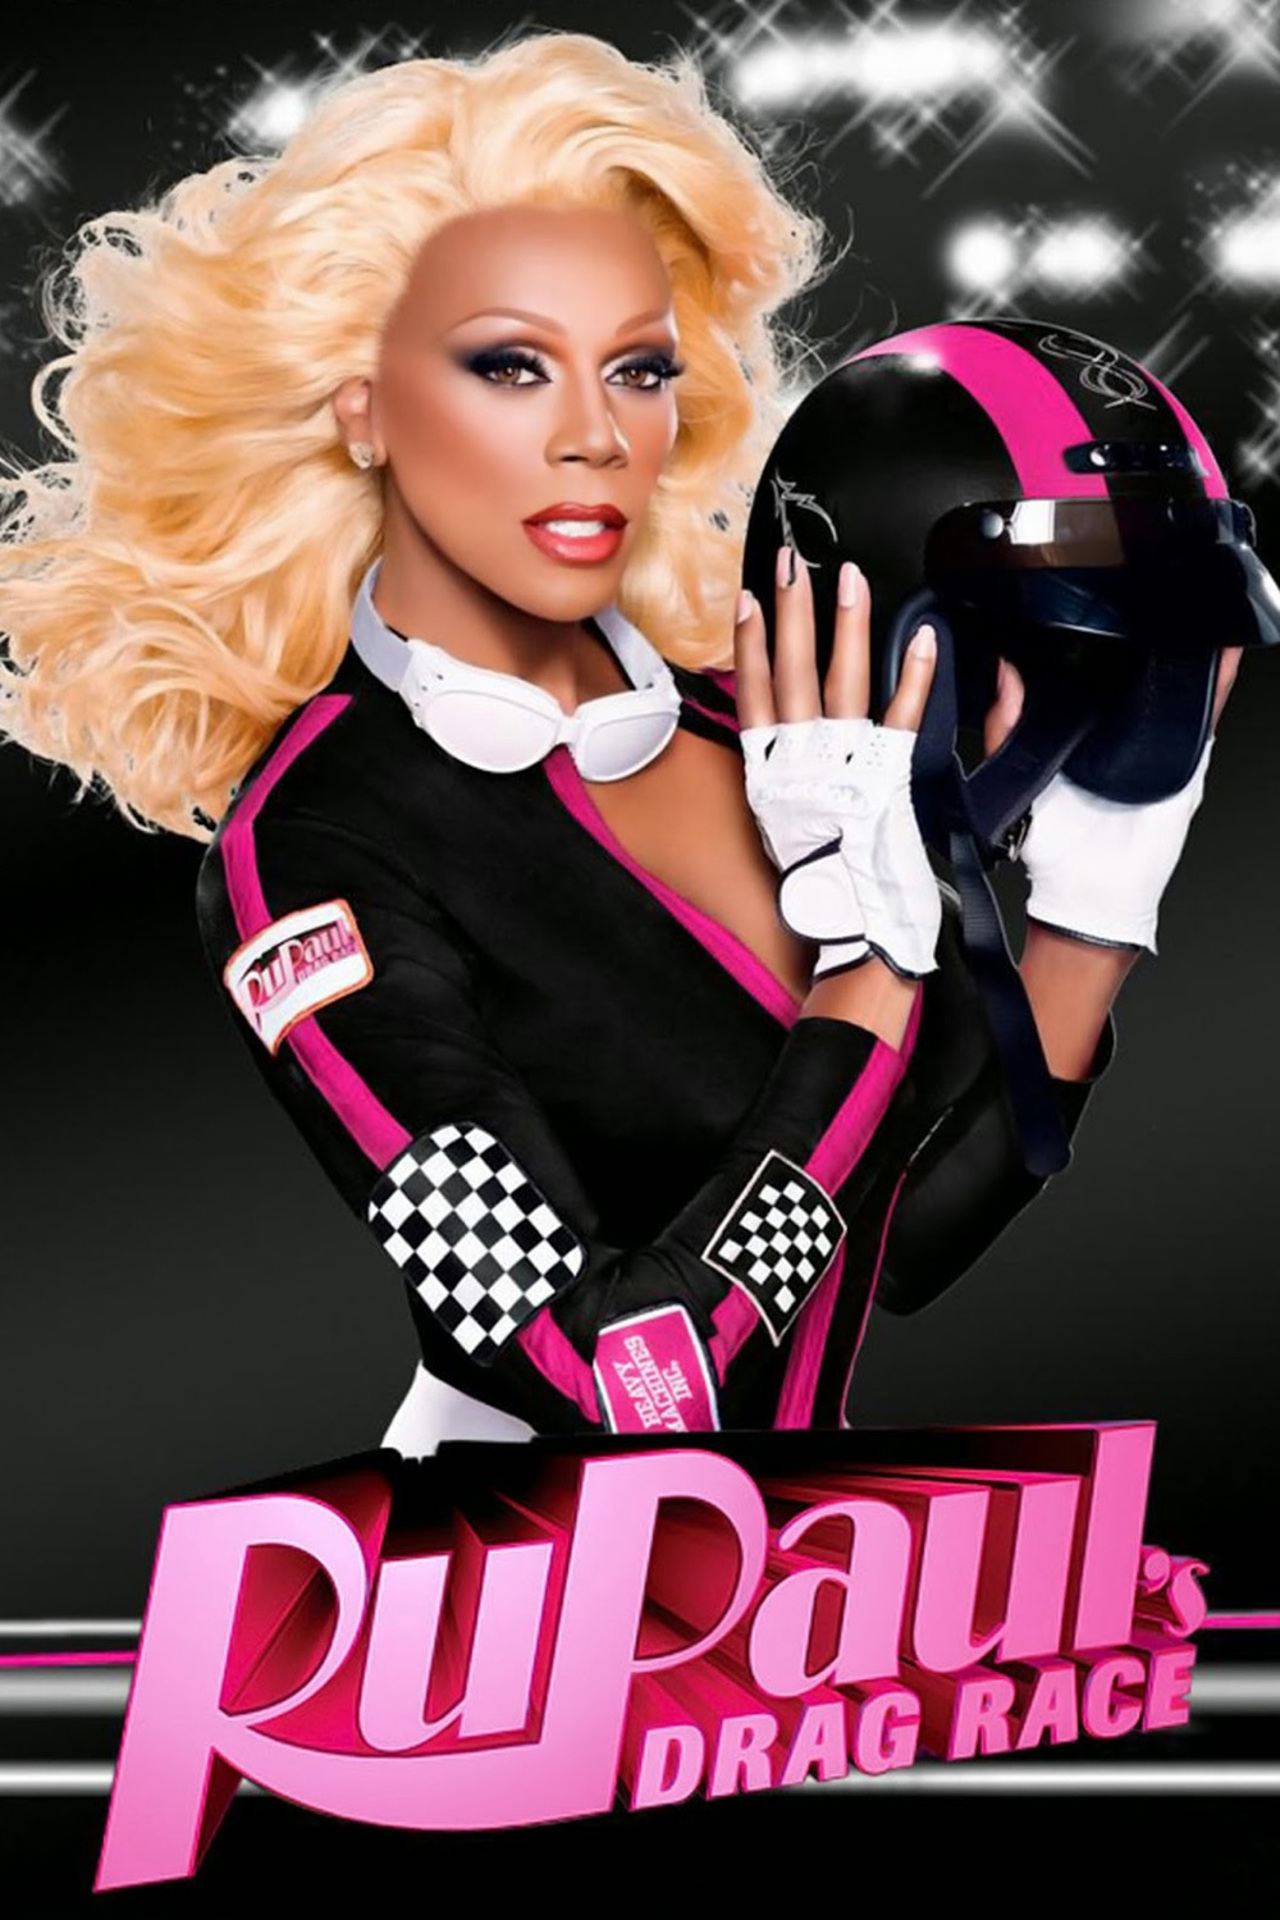 RuPauls Drag Race Season 8 123Movies